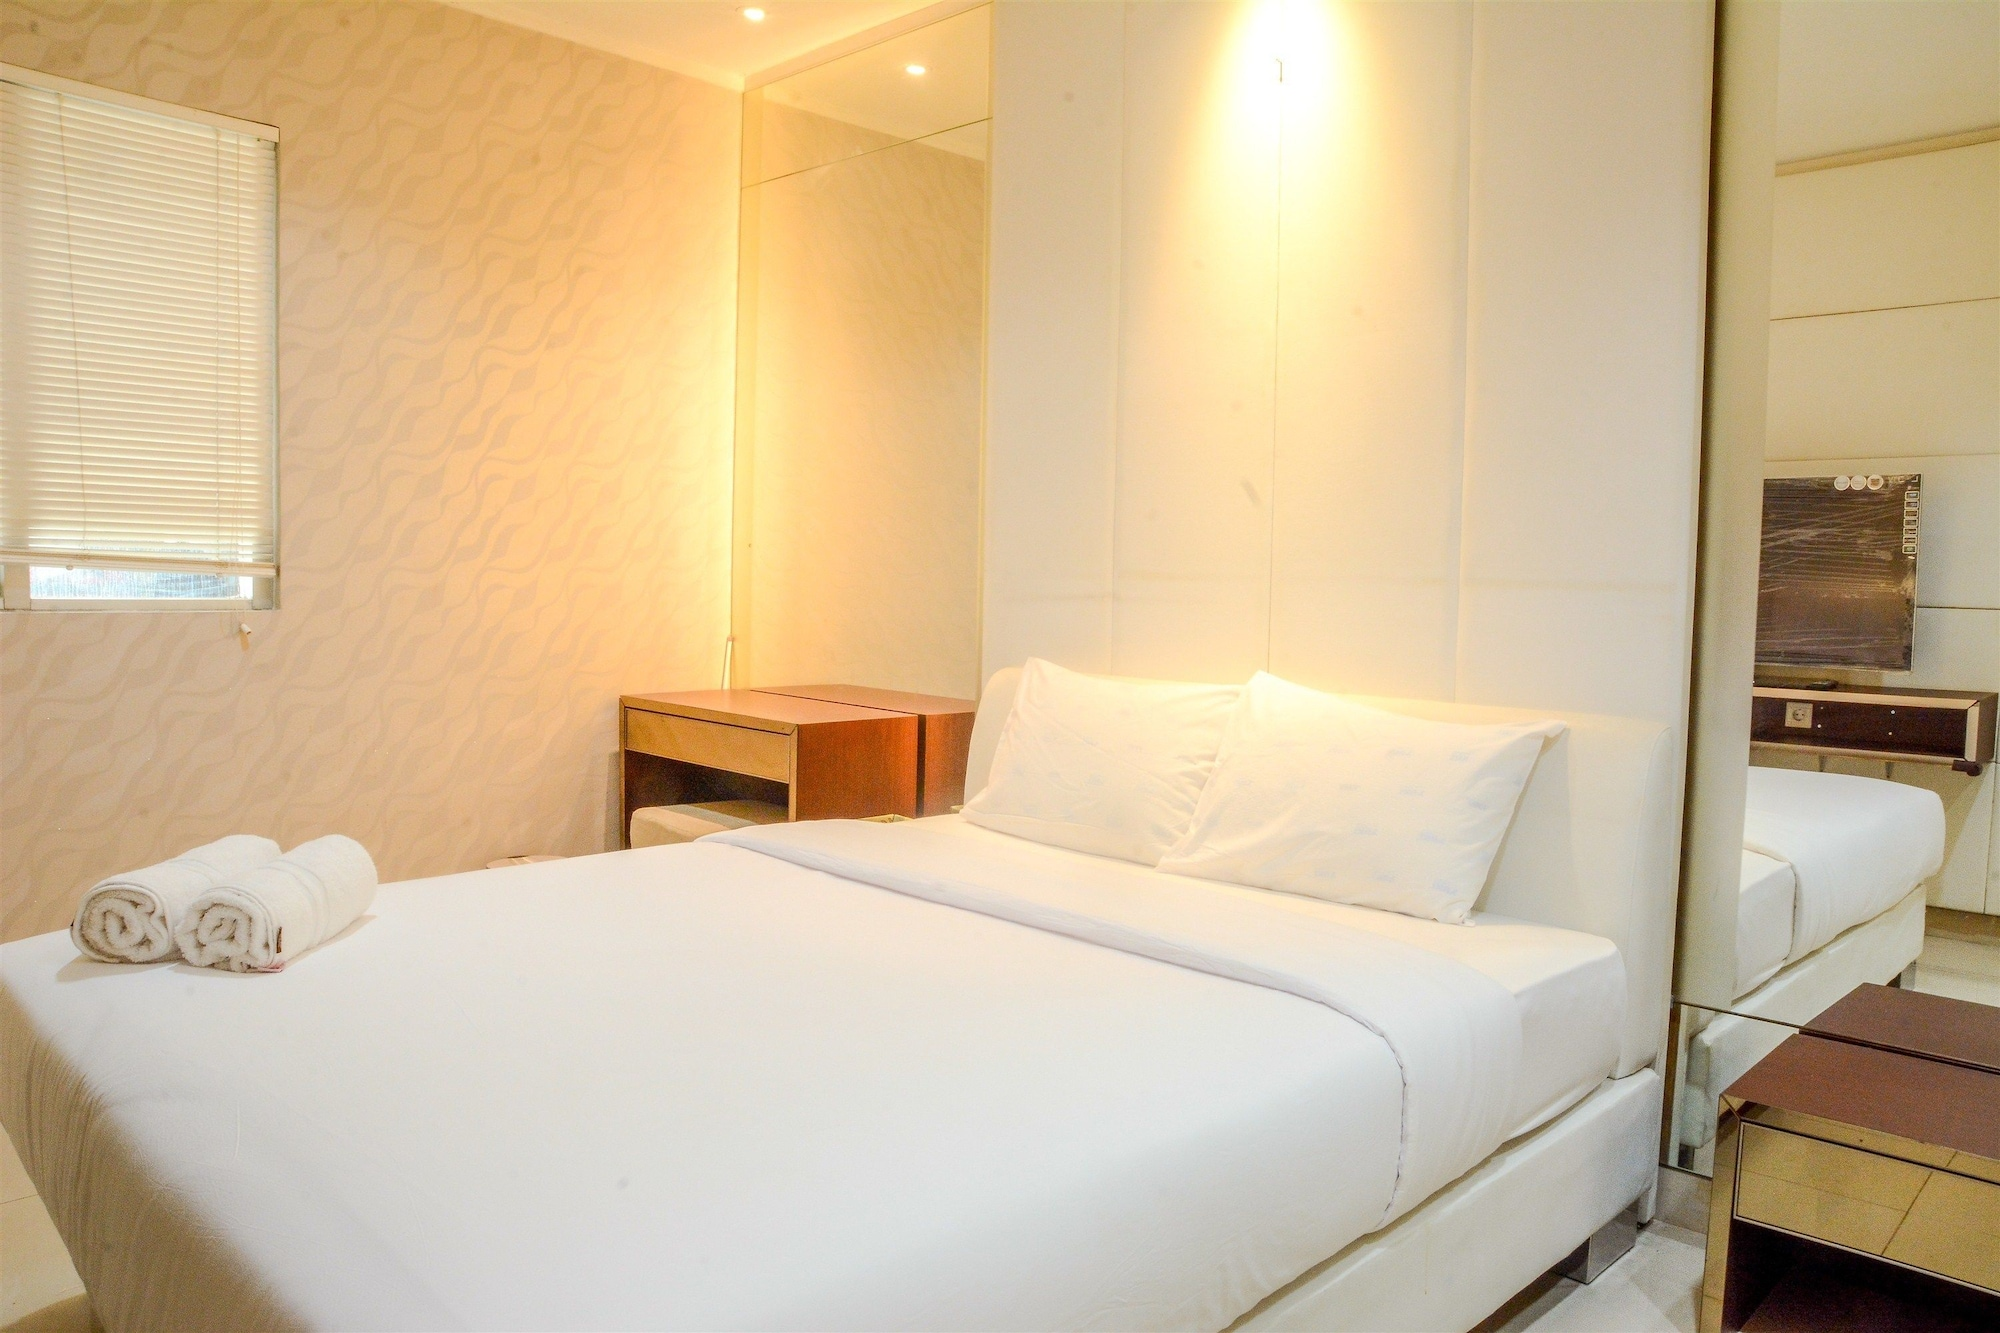 2 Bedrooms Apartment at Sahid Residence by Travelio, Jakarta Pusat